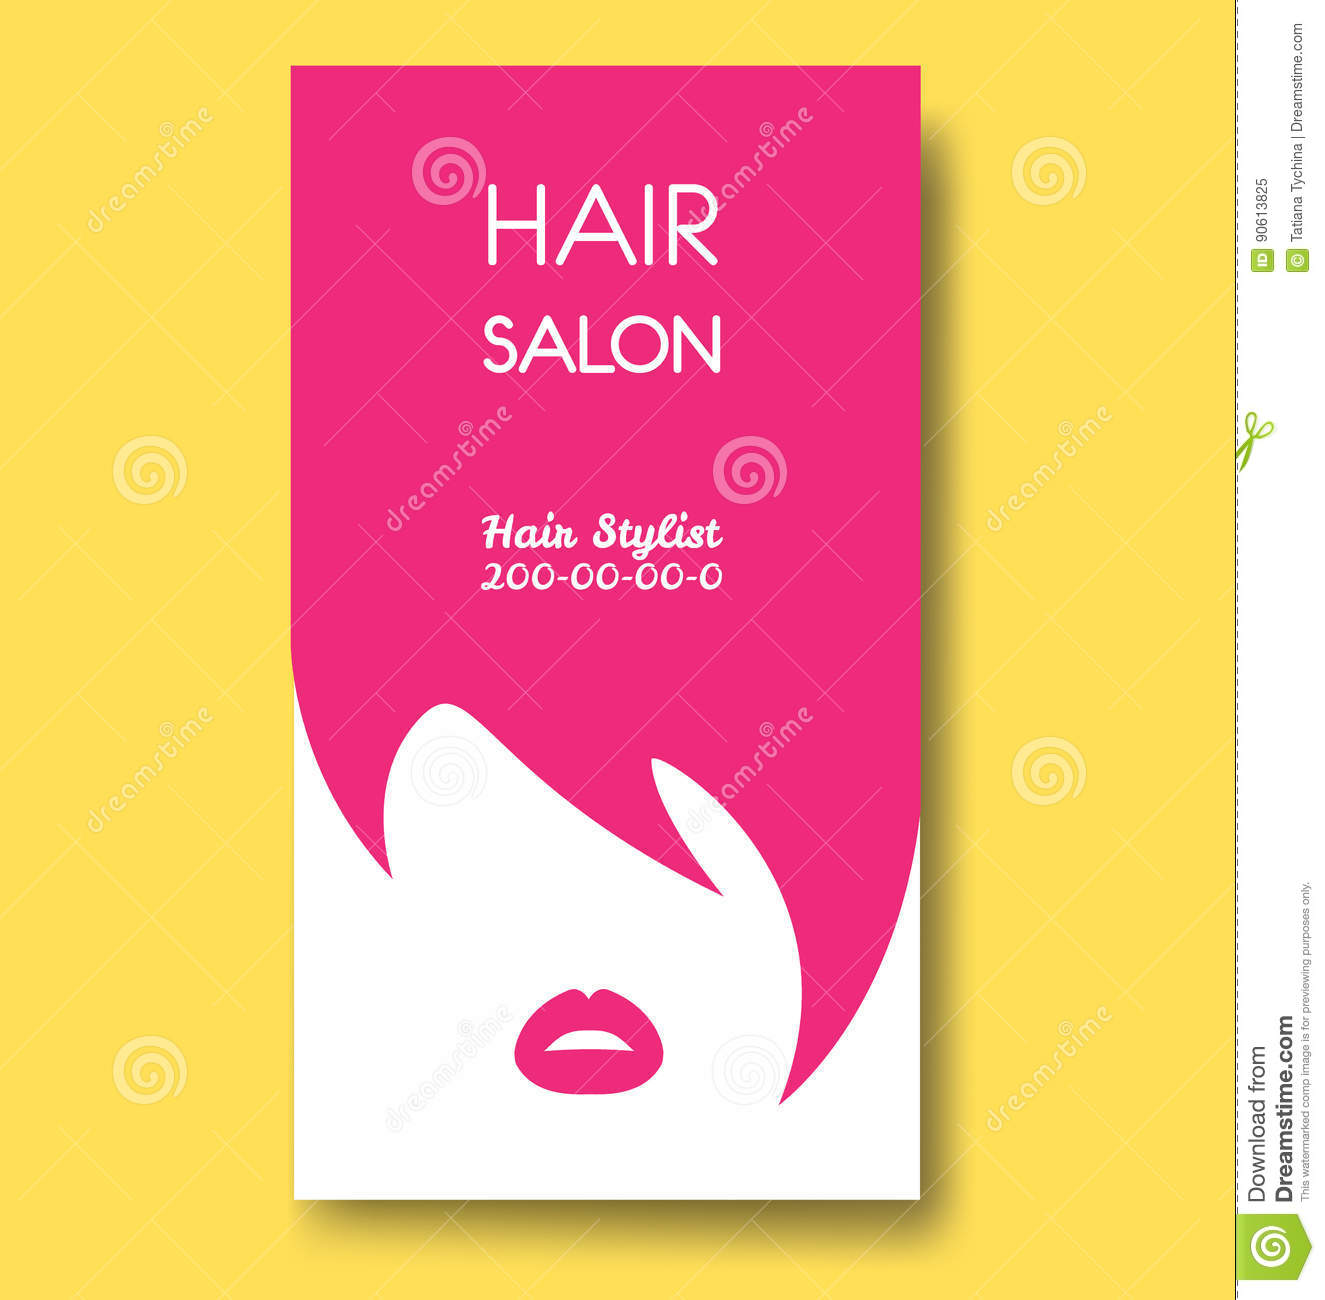 Hair salon business card templates with pink hair and pink lips download hair salon business card templates with pink hair and pink lips stock vector flashek Gallery